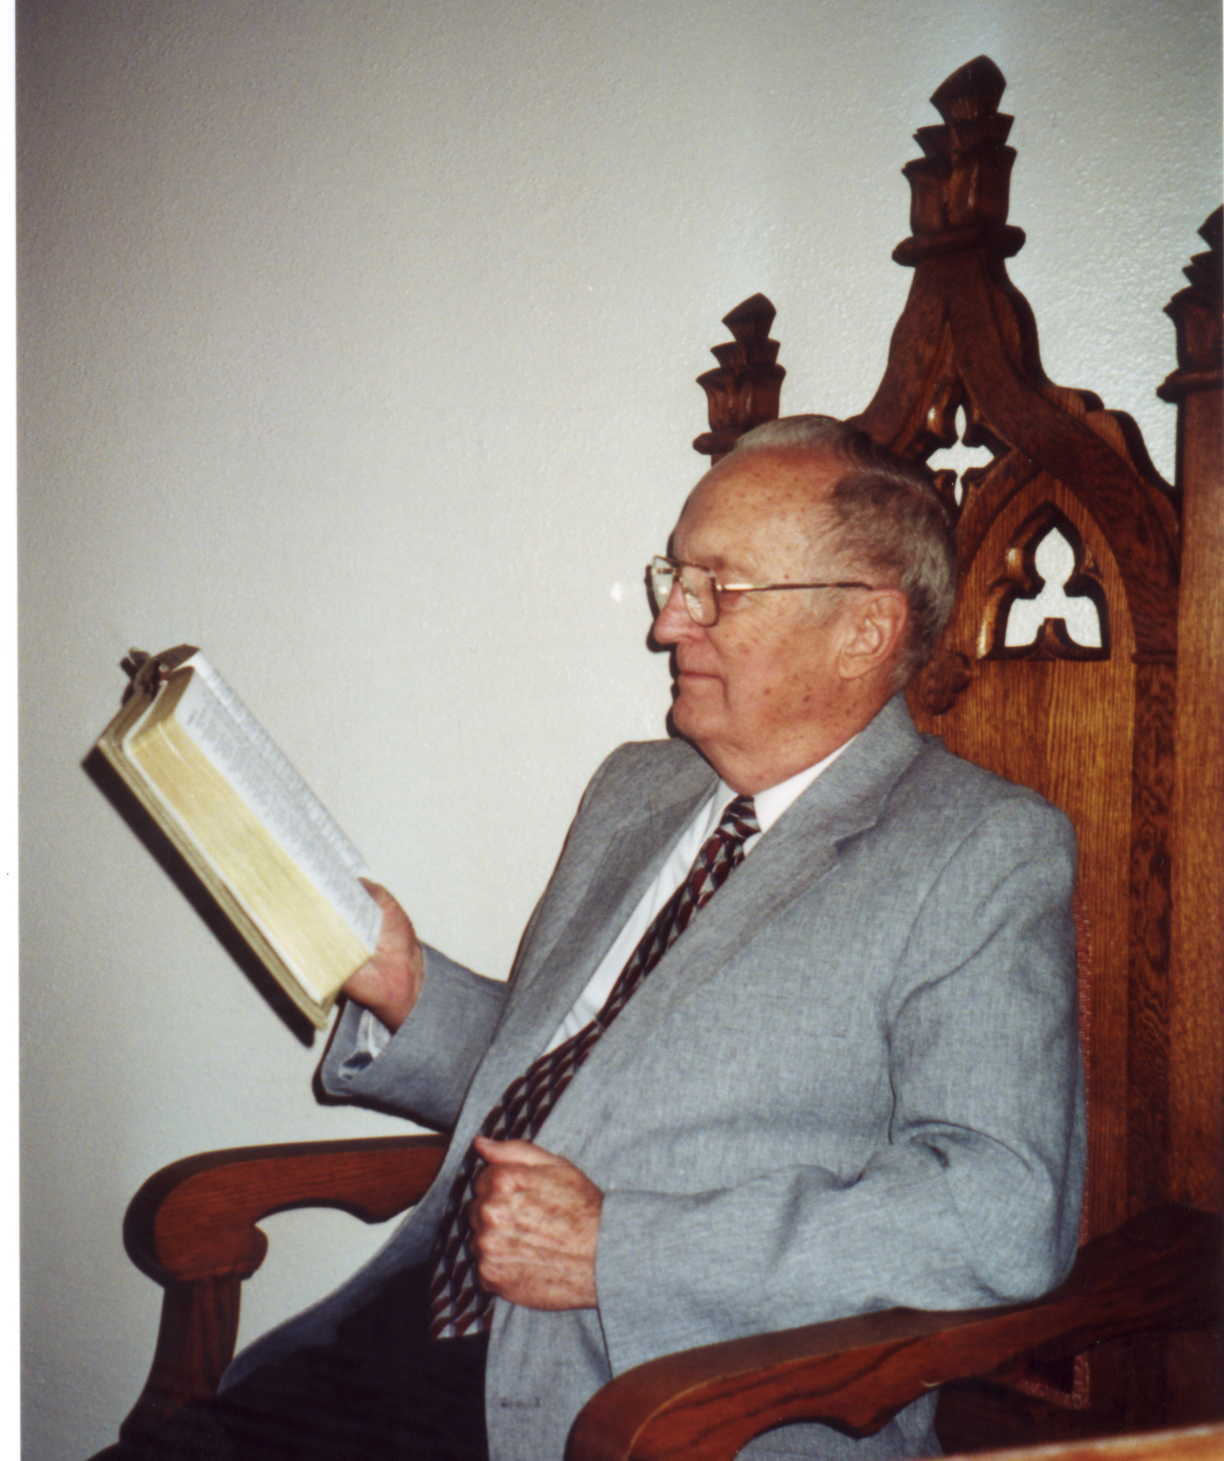 Pastor Harvey Hoiberg